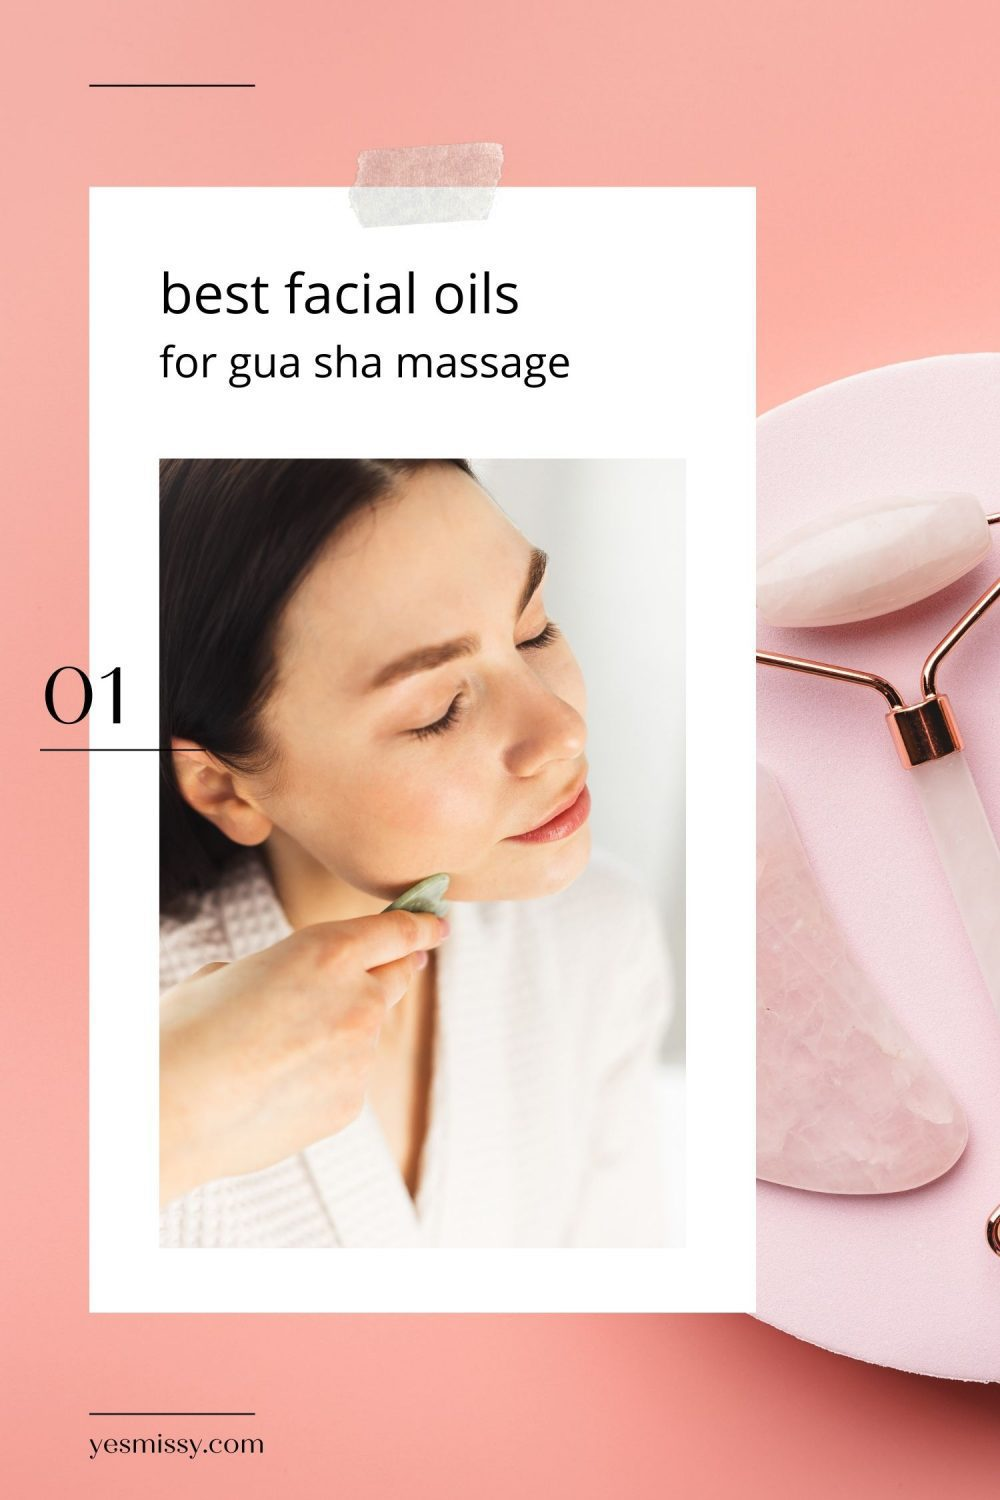 Using the right facial oils for your skin can help enhance your gua sha routine. Find out which facial oils are best for you skin type.